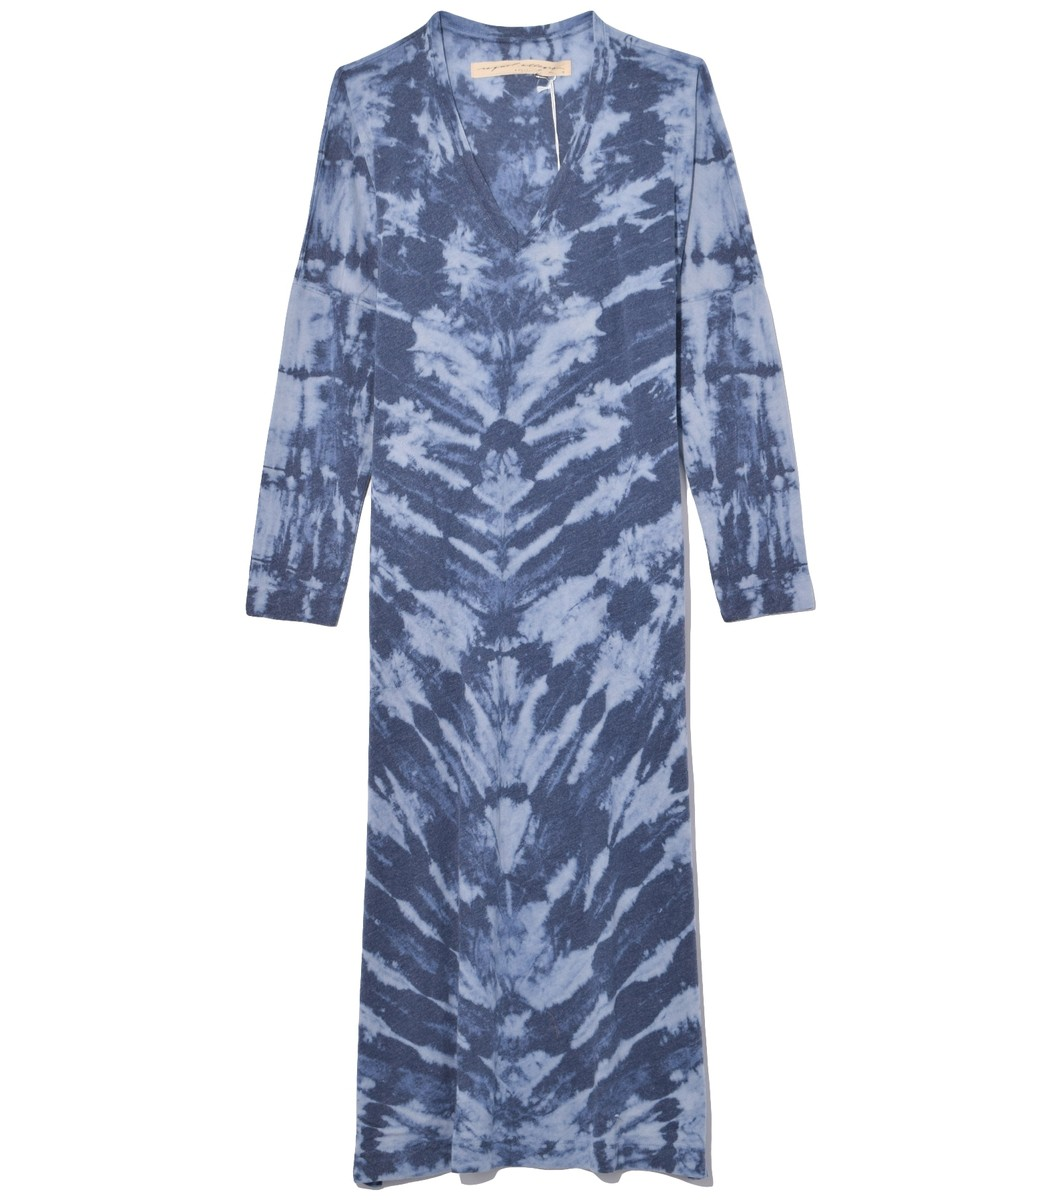 Raquel Allegra Tops Long Sleeve V-Neck Caftan in Water Tie Dye